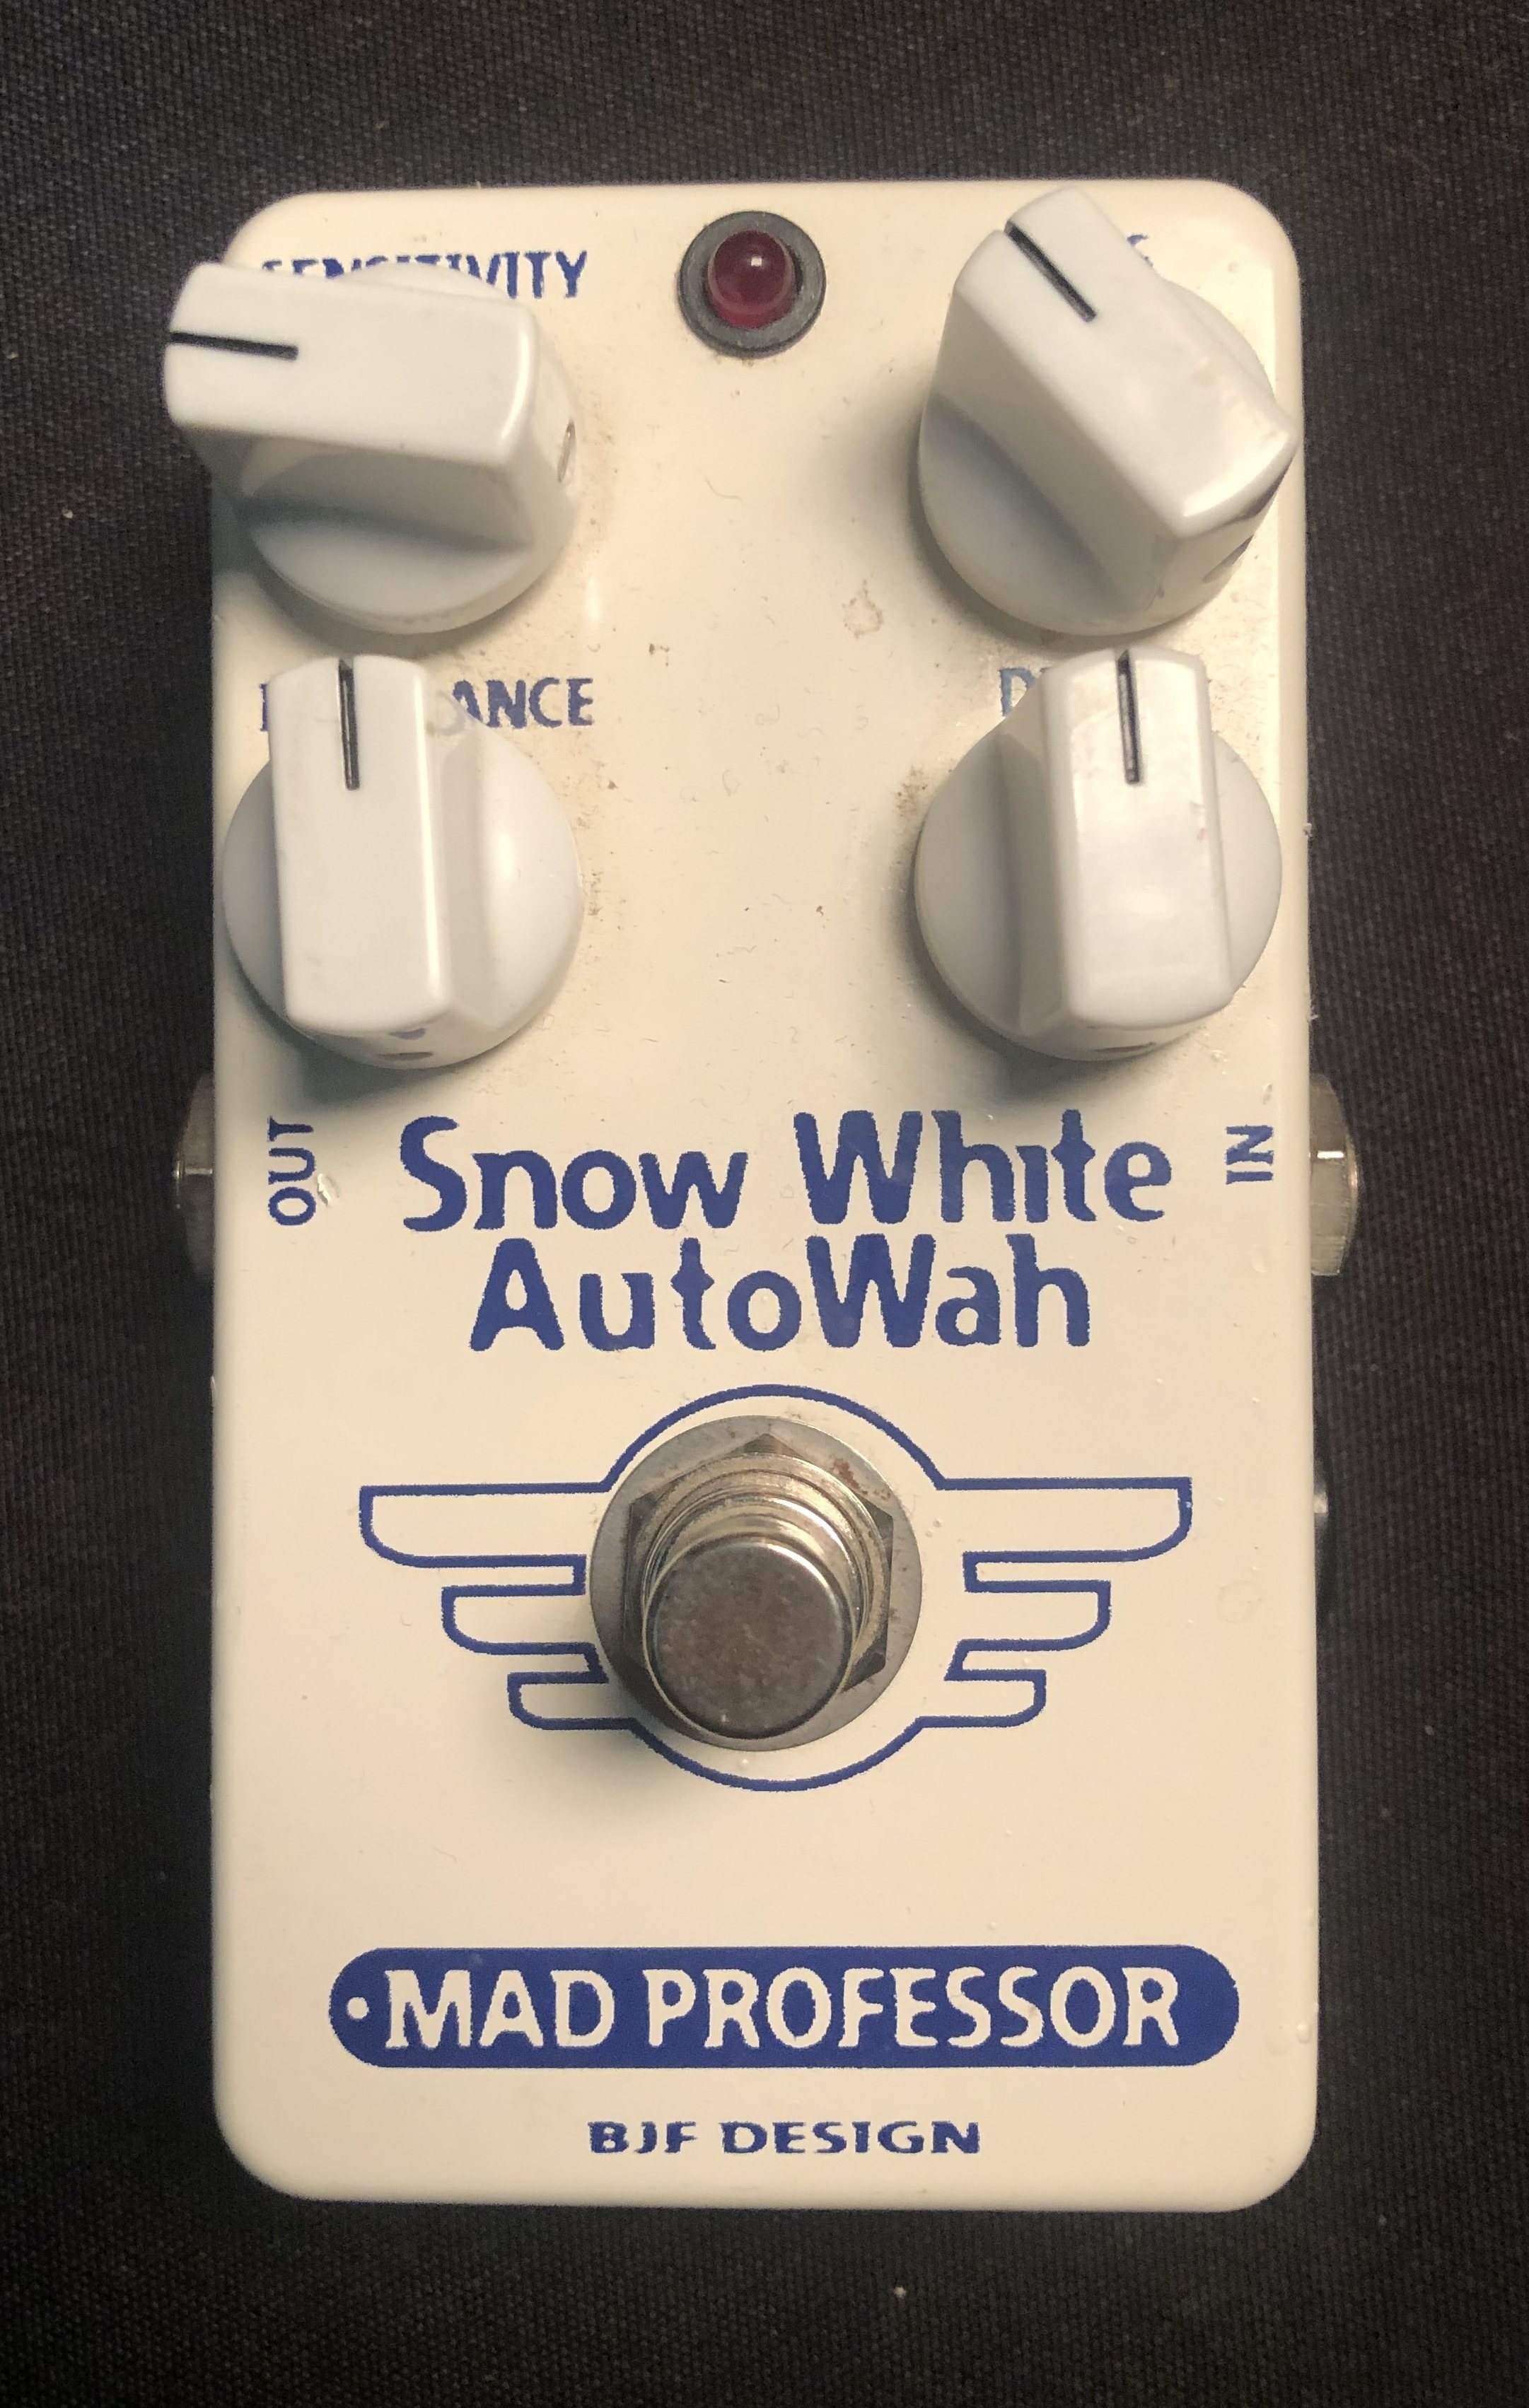 MAD PROFESSOR - Snow White Auto Wah Pedal